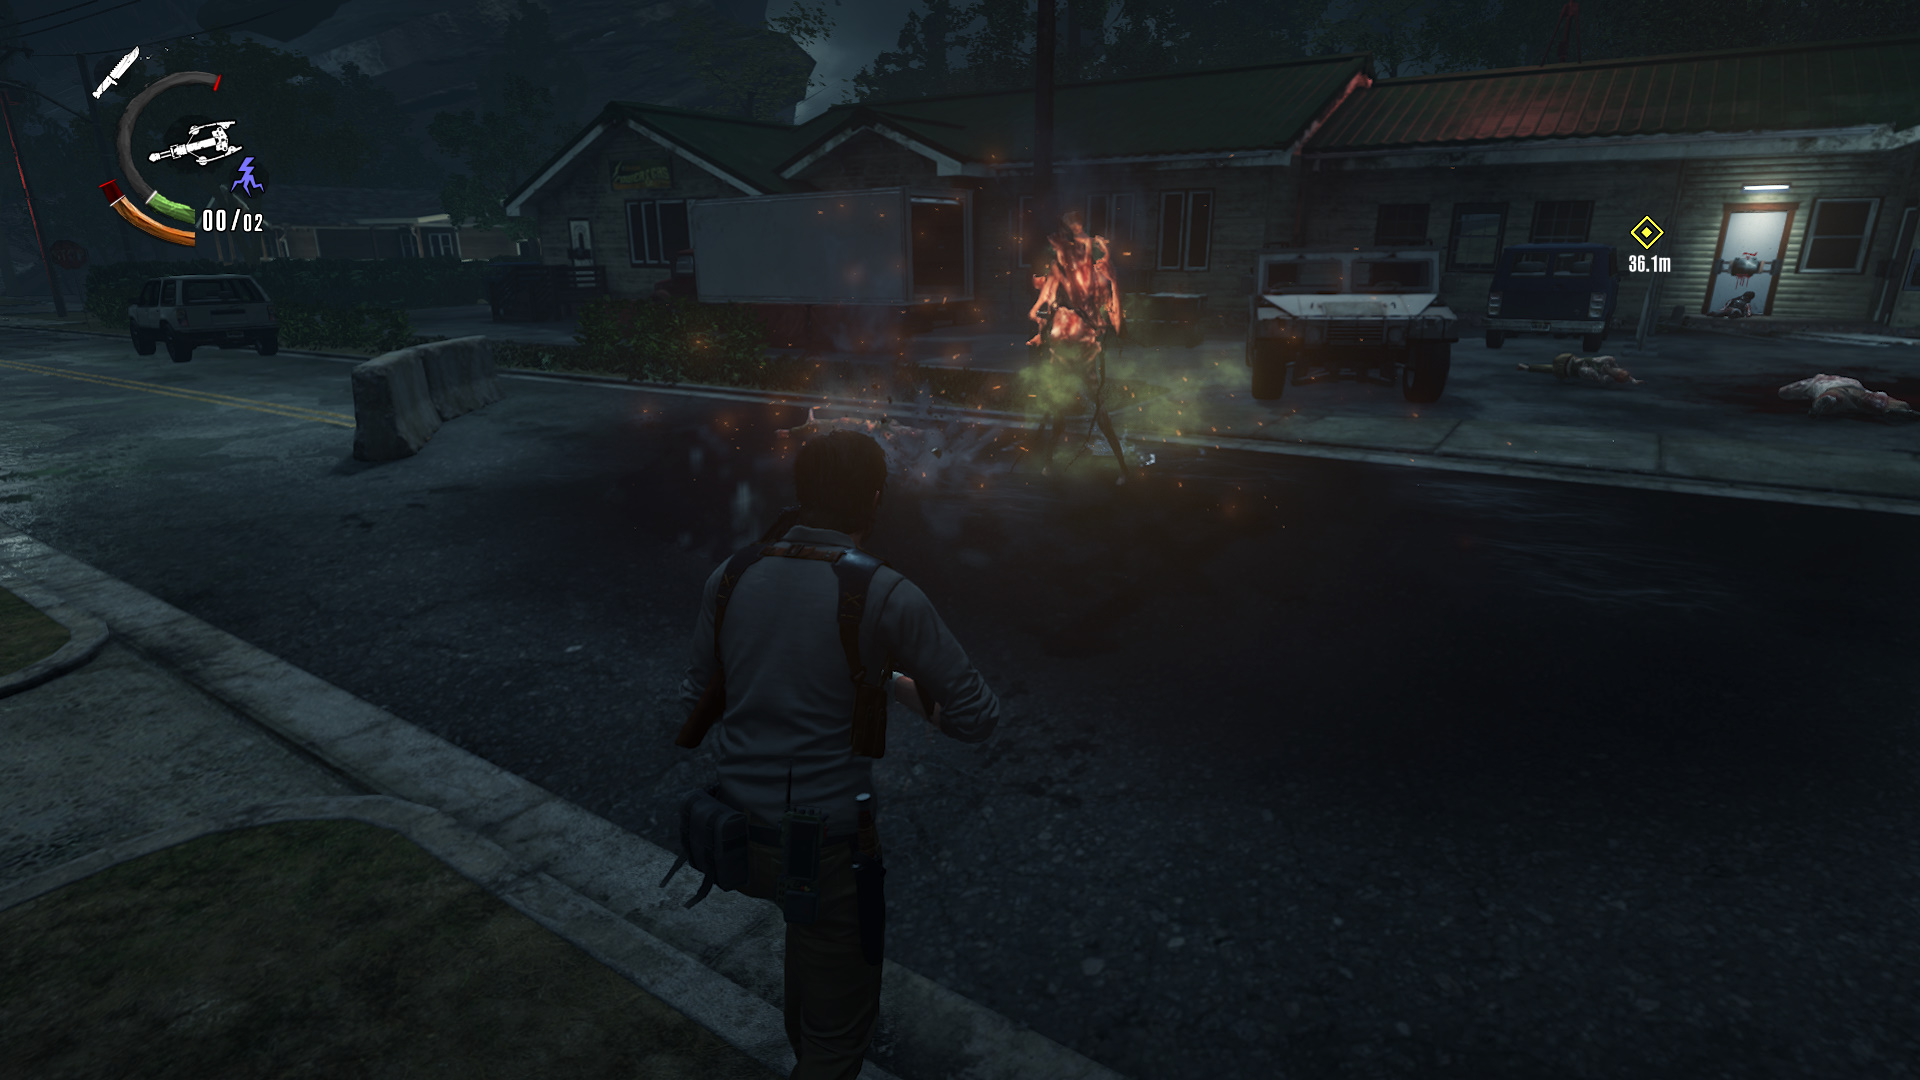 TEW2 2019-02-05 21-51-40-826.jpg - Evil Within 2, the